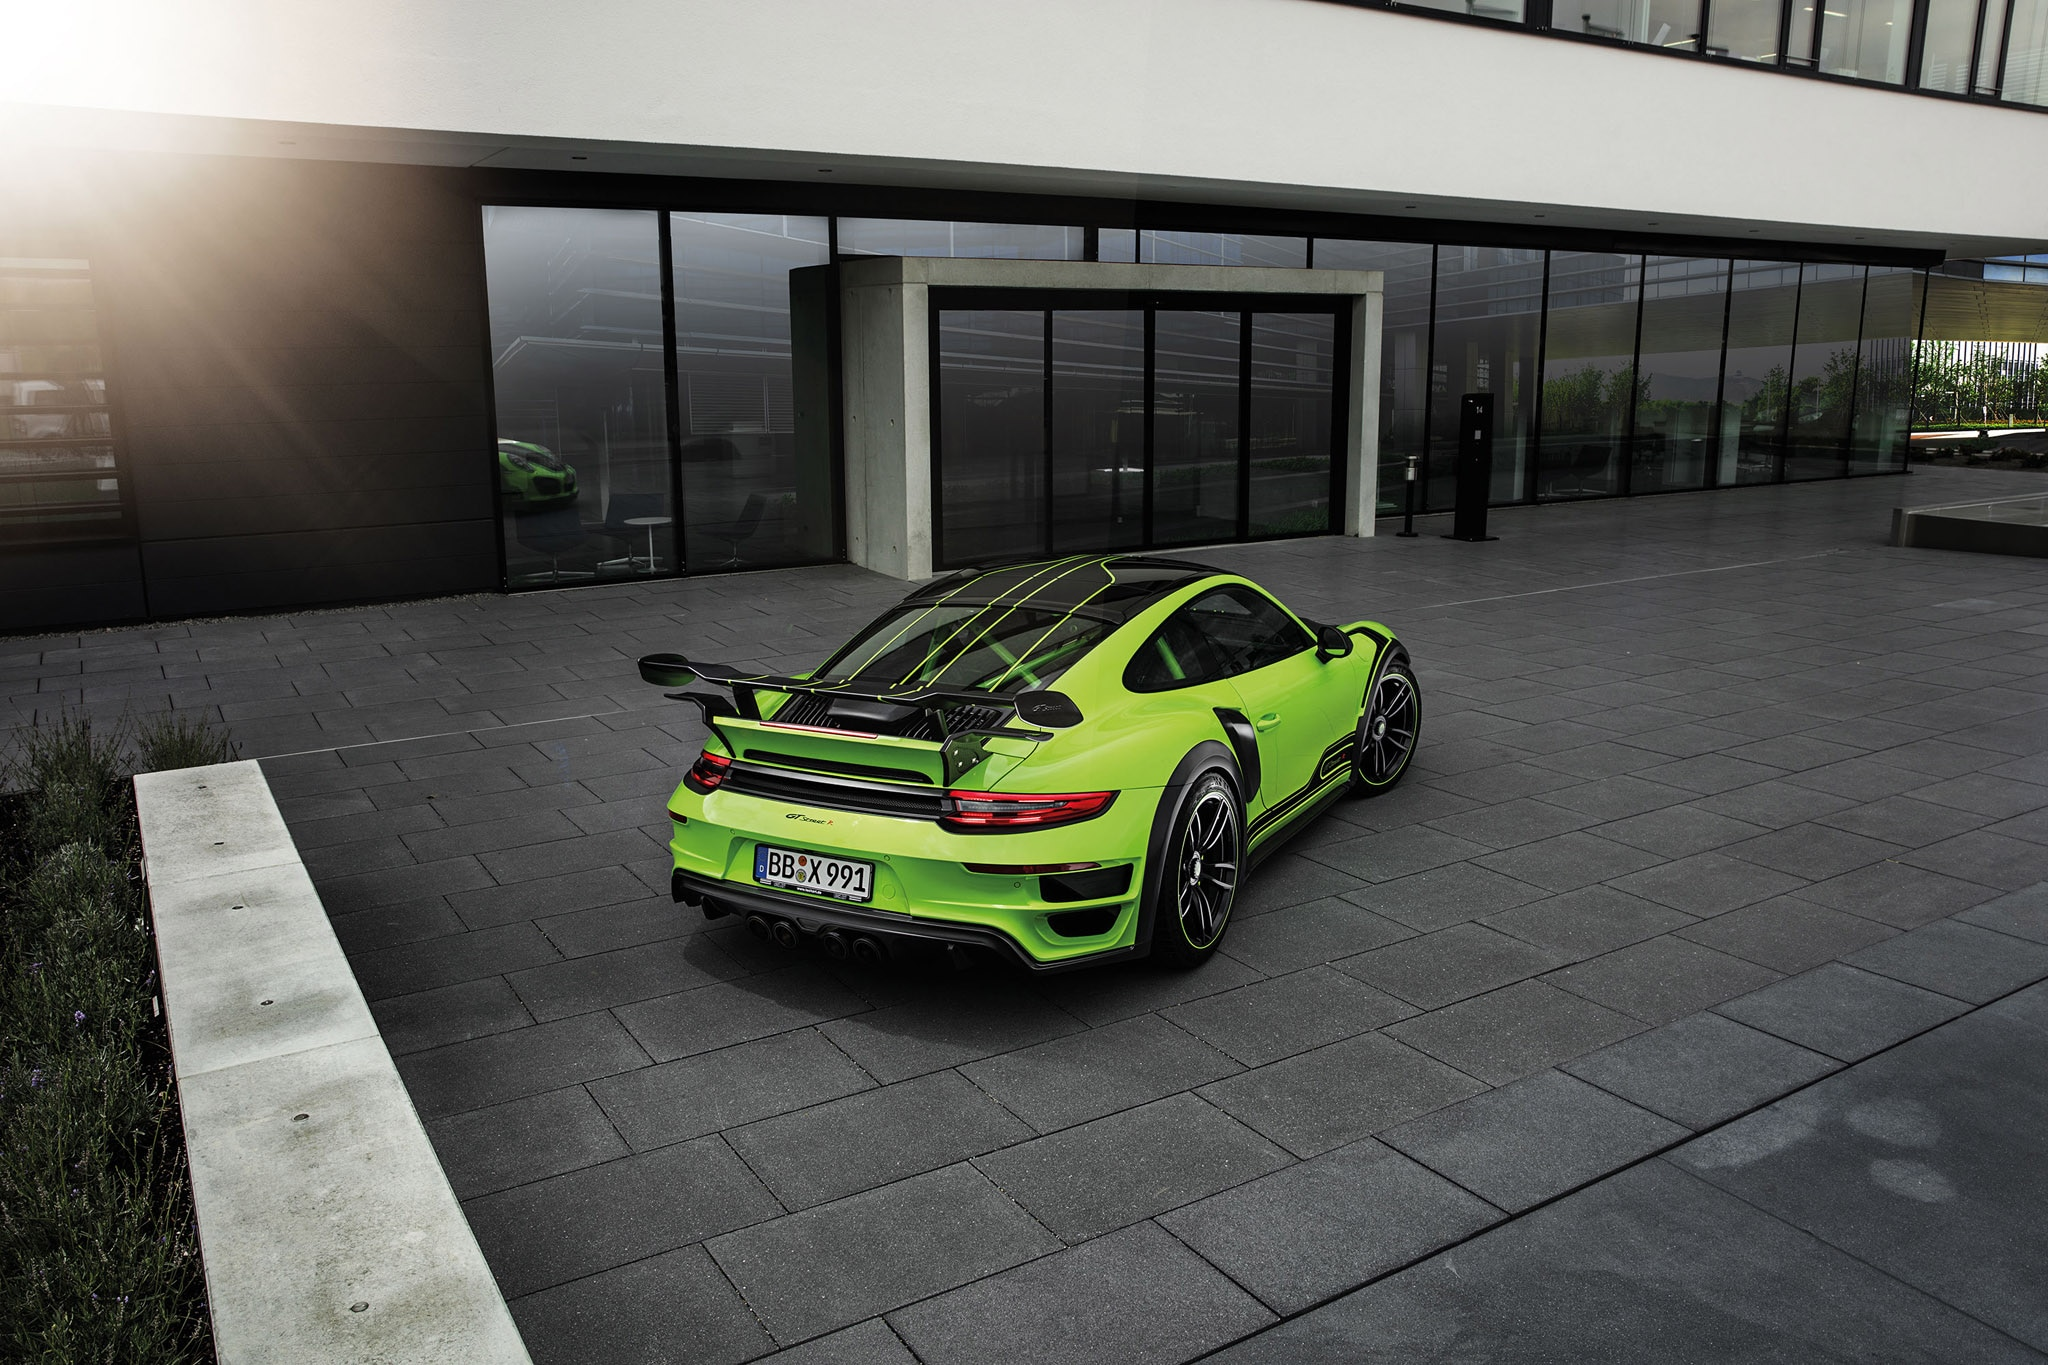 TECHART_GTstreet_R_exterior_09 Remarkable Techart Porsche 911 Gt2 Gtstreet Rs Cars Trend